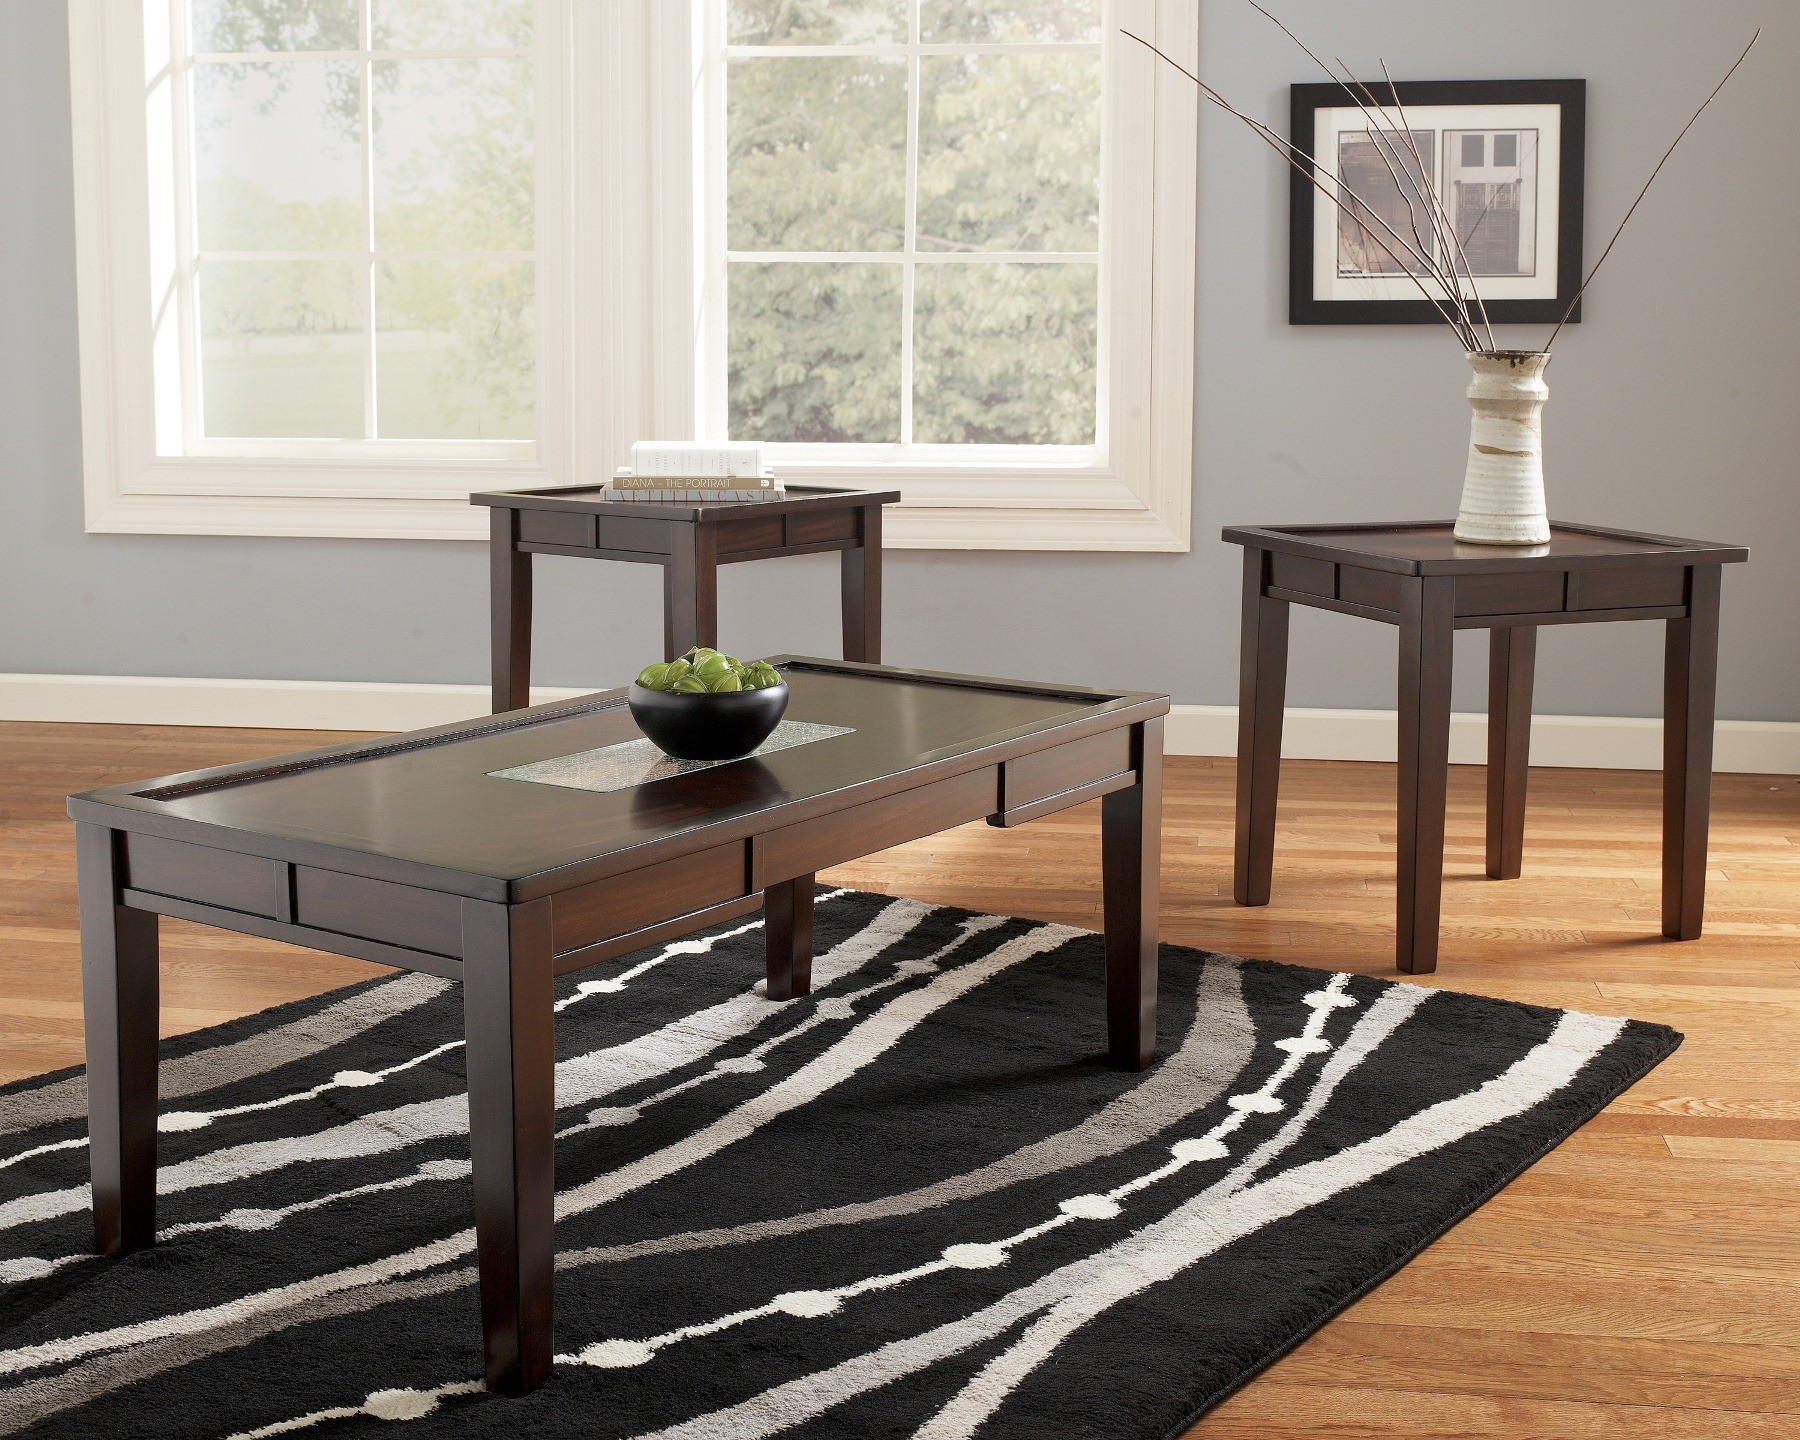 Amazing Ashley Furniture Coffee Table Set 1800 x 1440 · 729 kB · jpeg